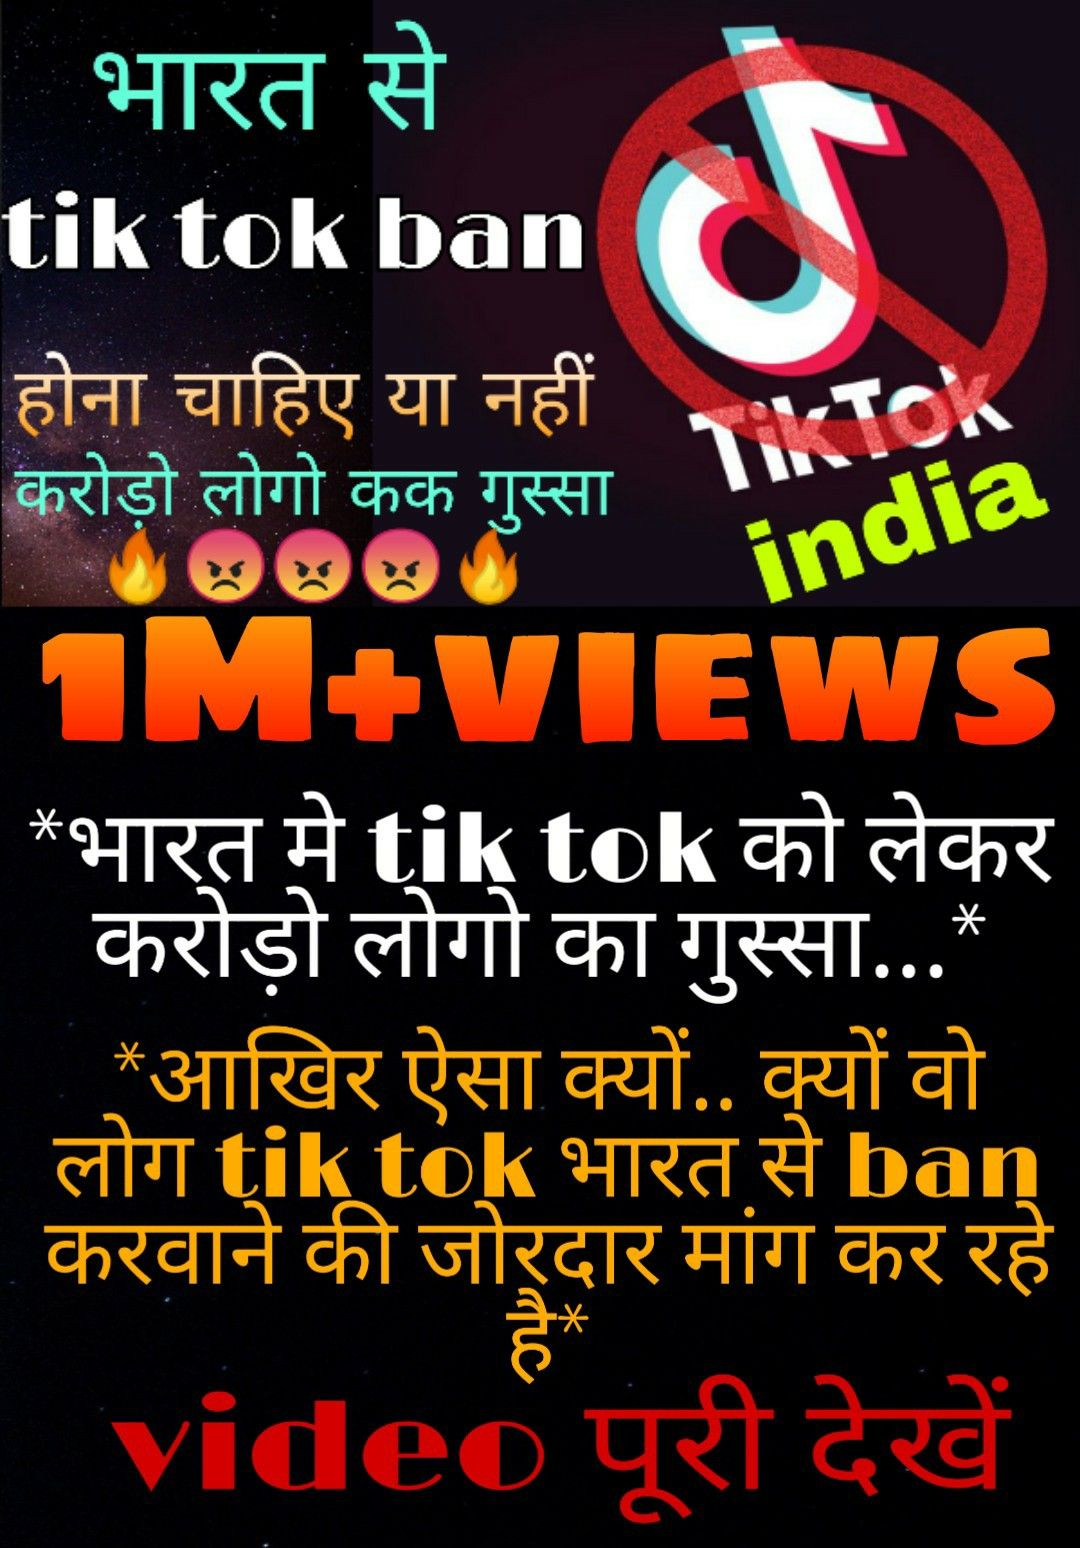 Tik tok ban in india in 2020 General knowledge facts